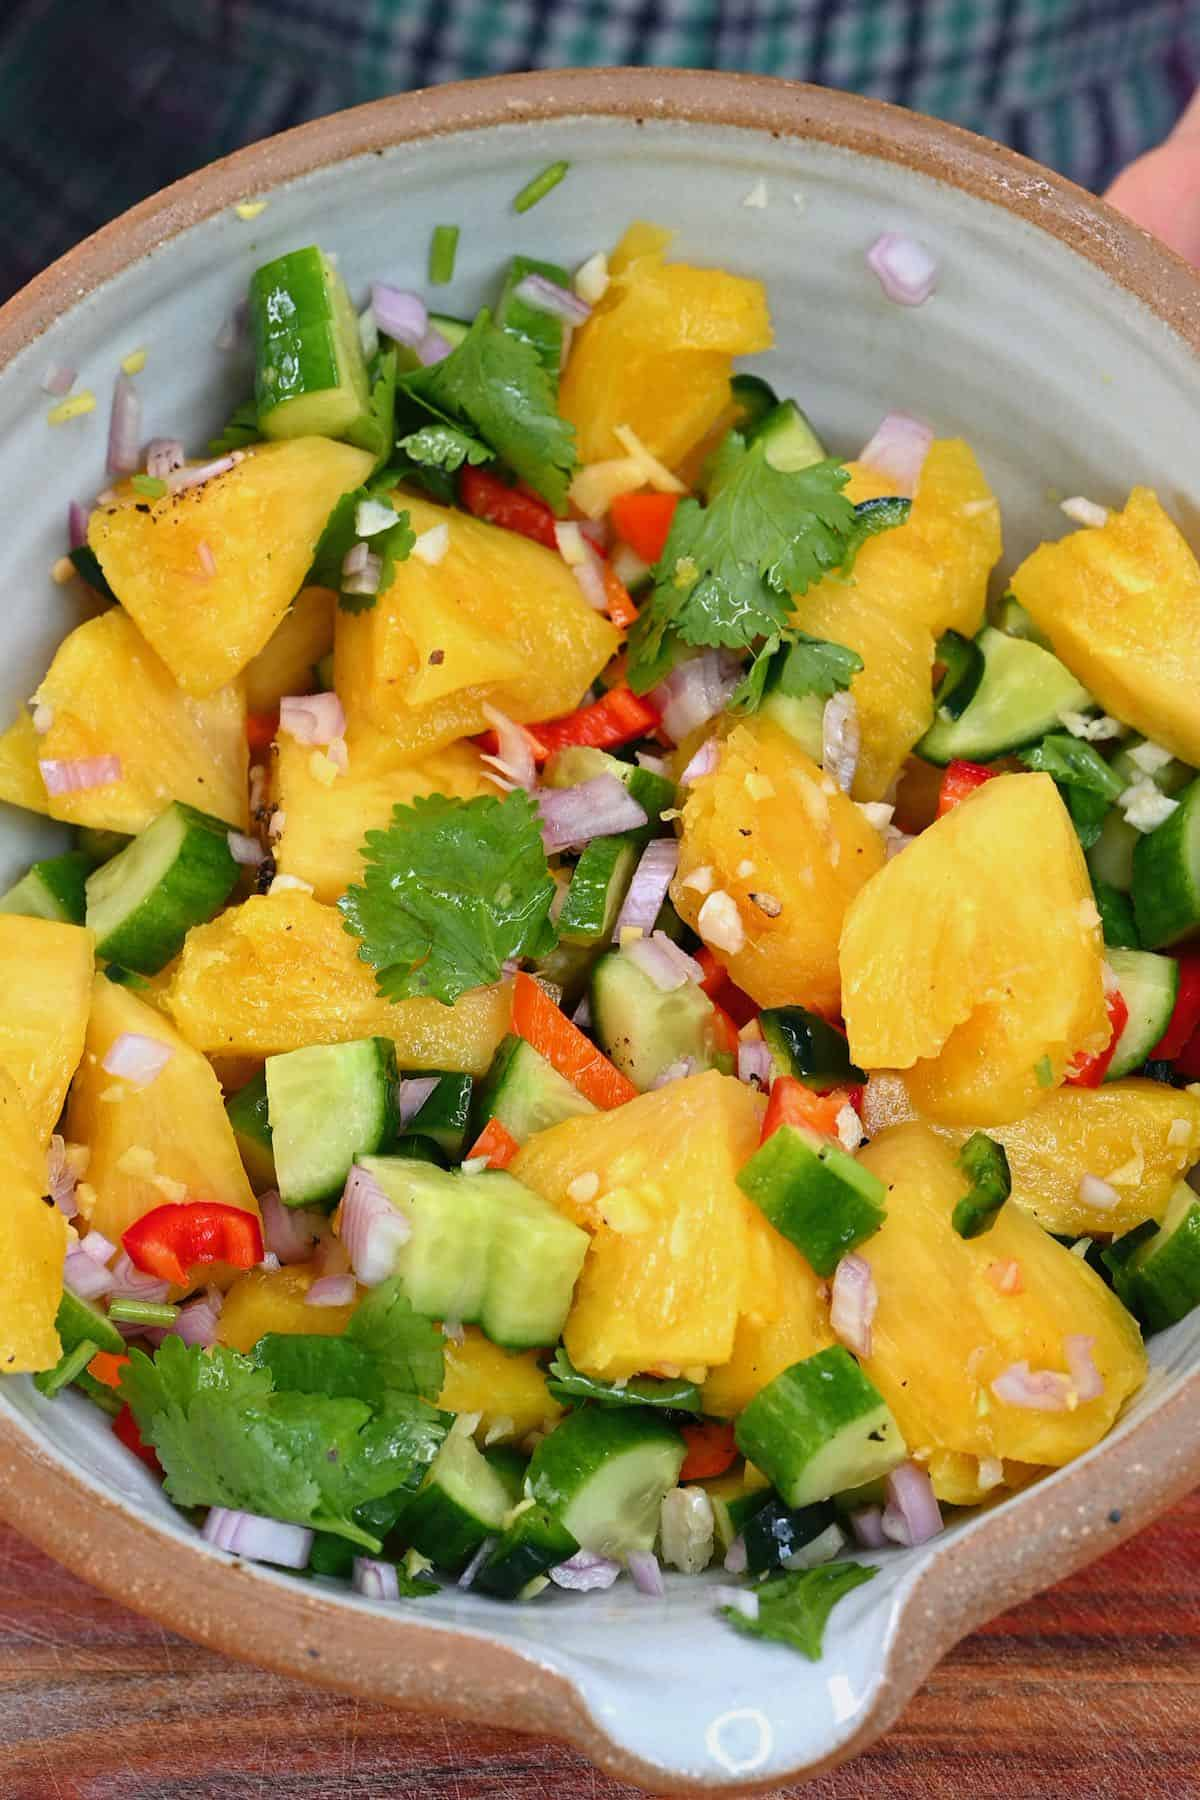 Pineapple salad in a bowl